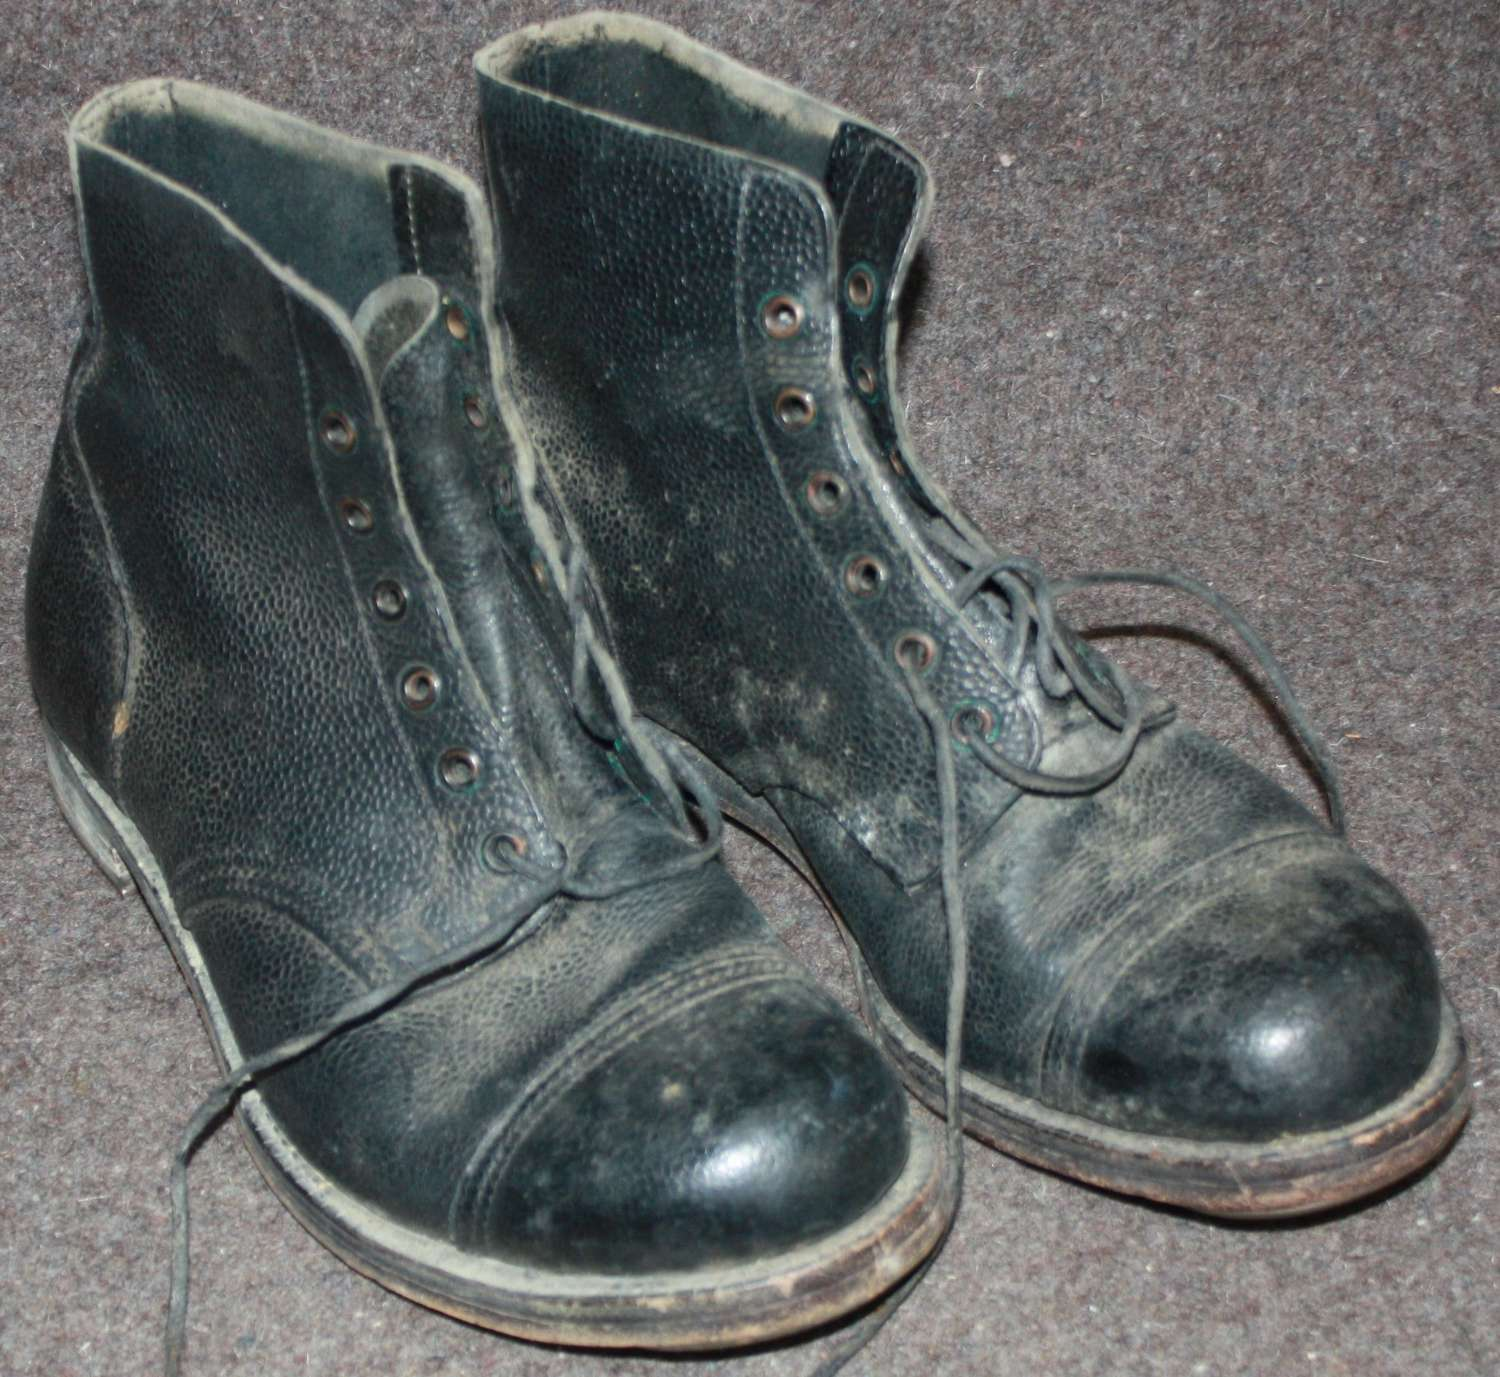 A PAIR OF 1950'S SIZE 8 HOBNAIL BOOTS